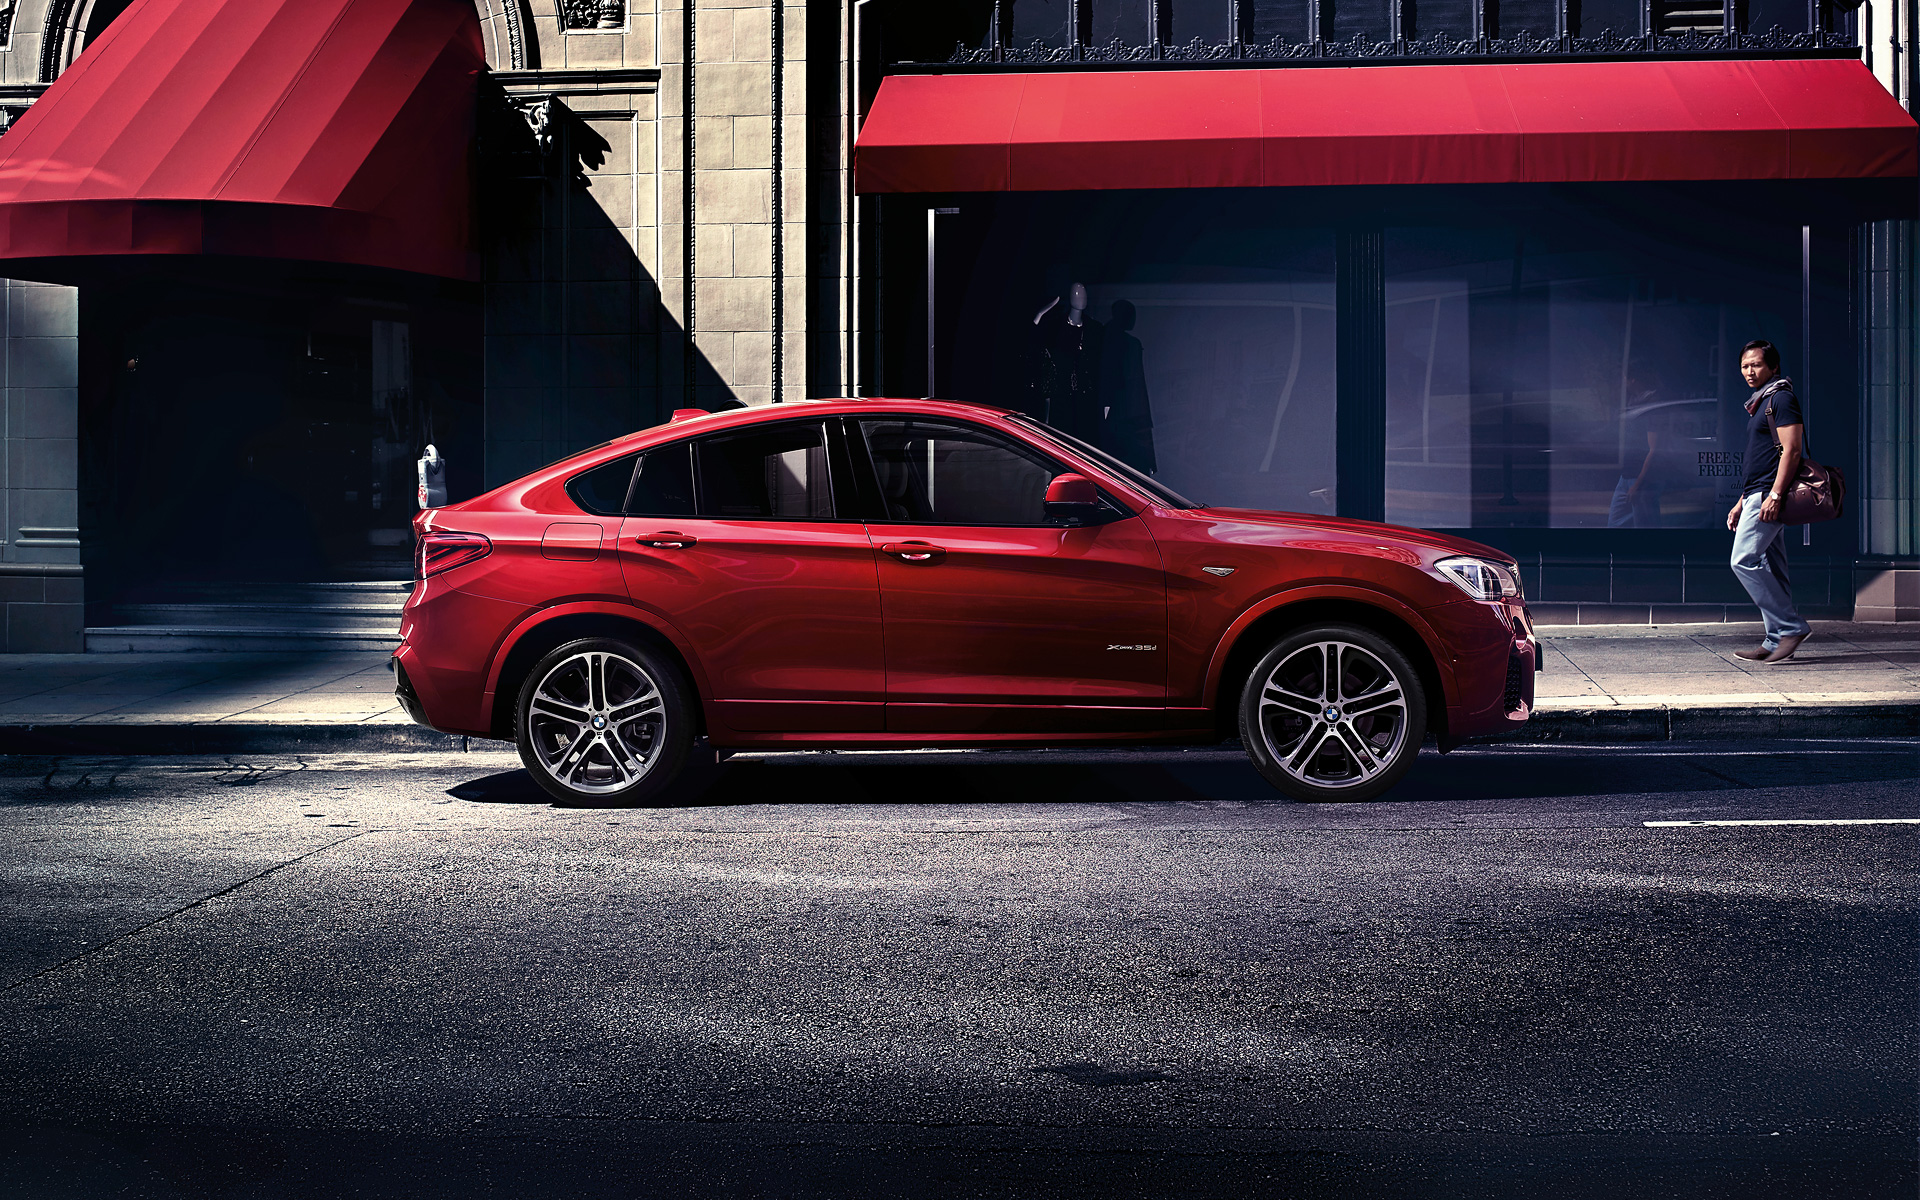 Bmw X4 Laterale Rossa